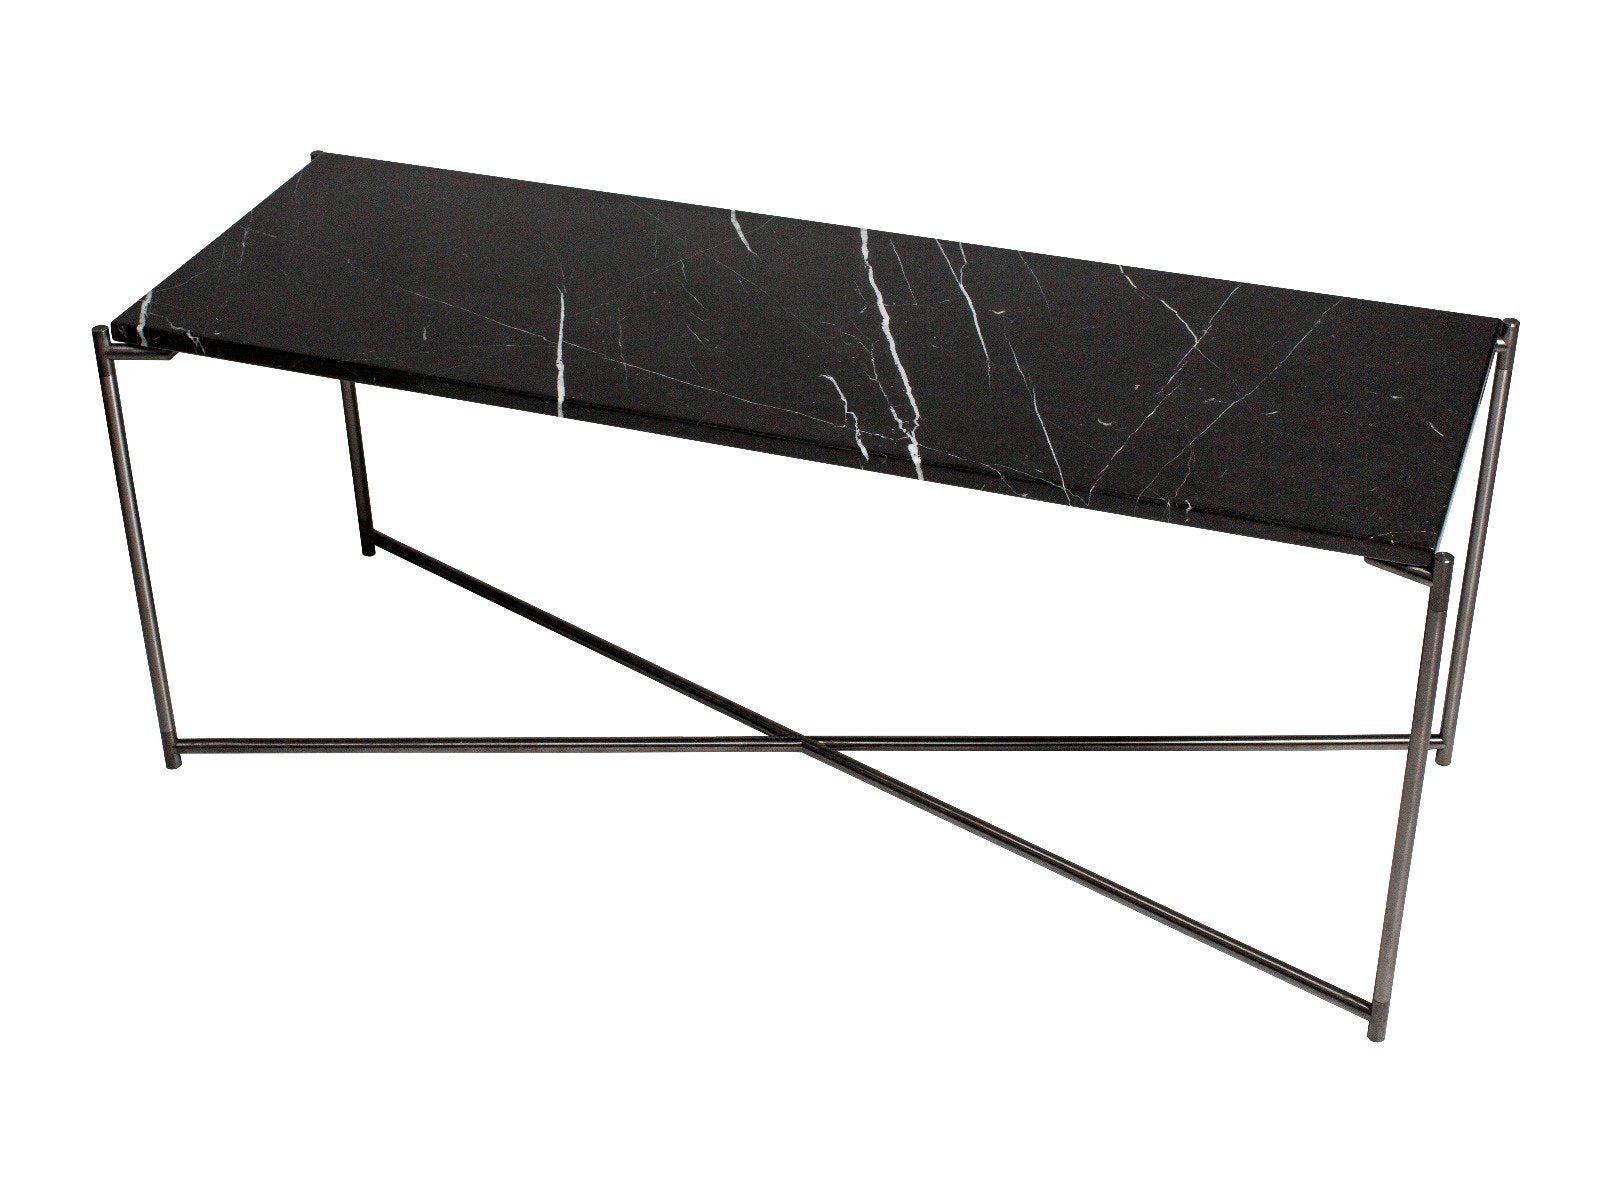 Large low Console table BLACK MARBLE with GUN METAL FRAME